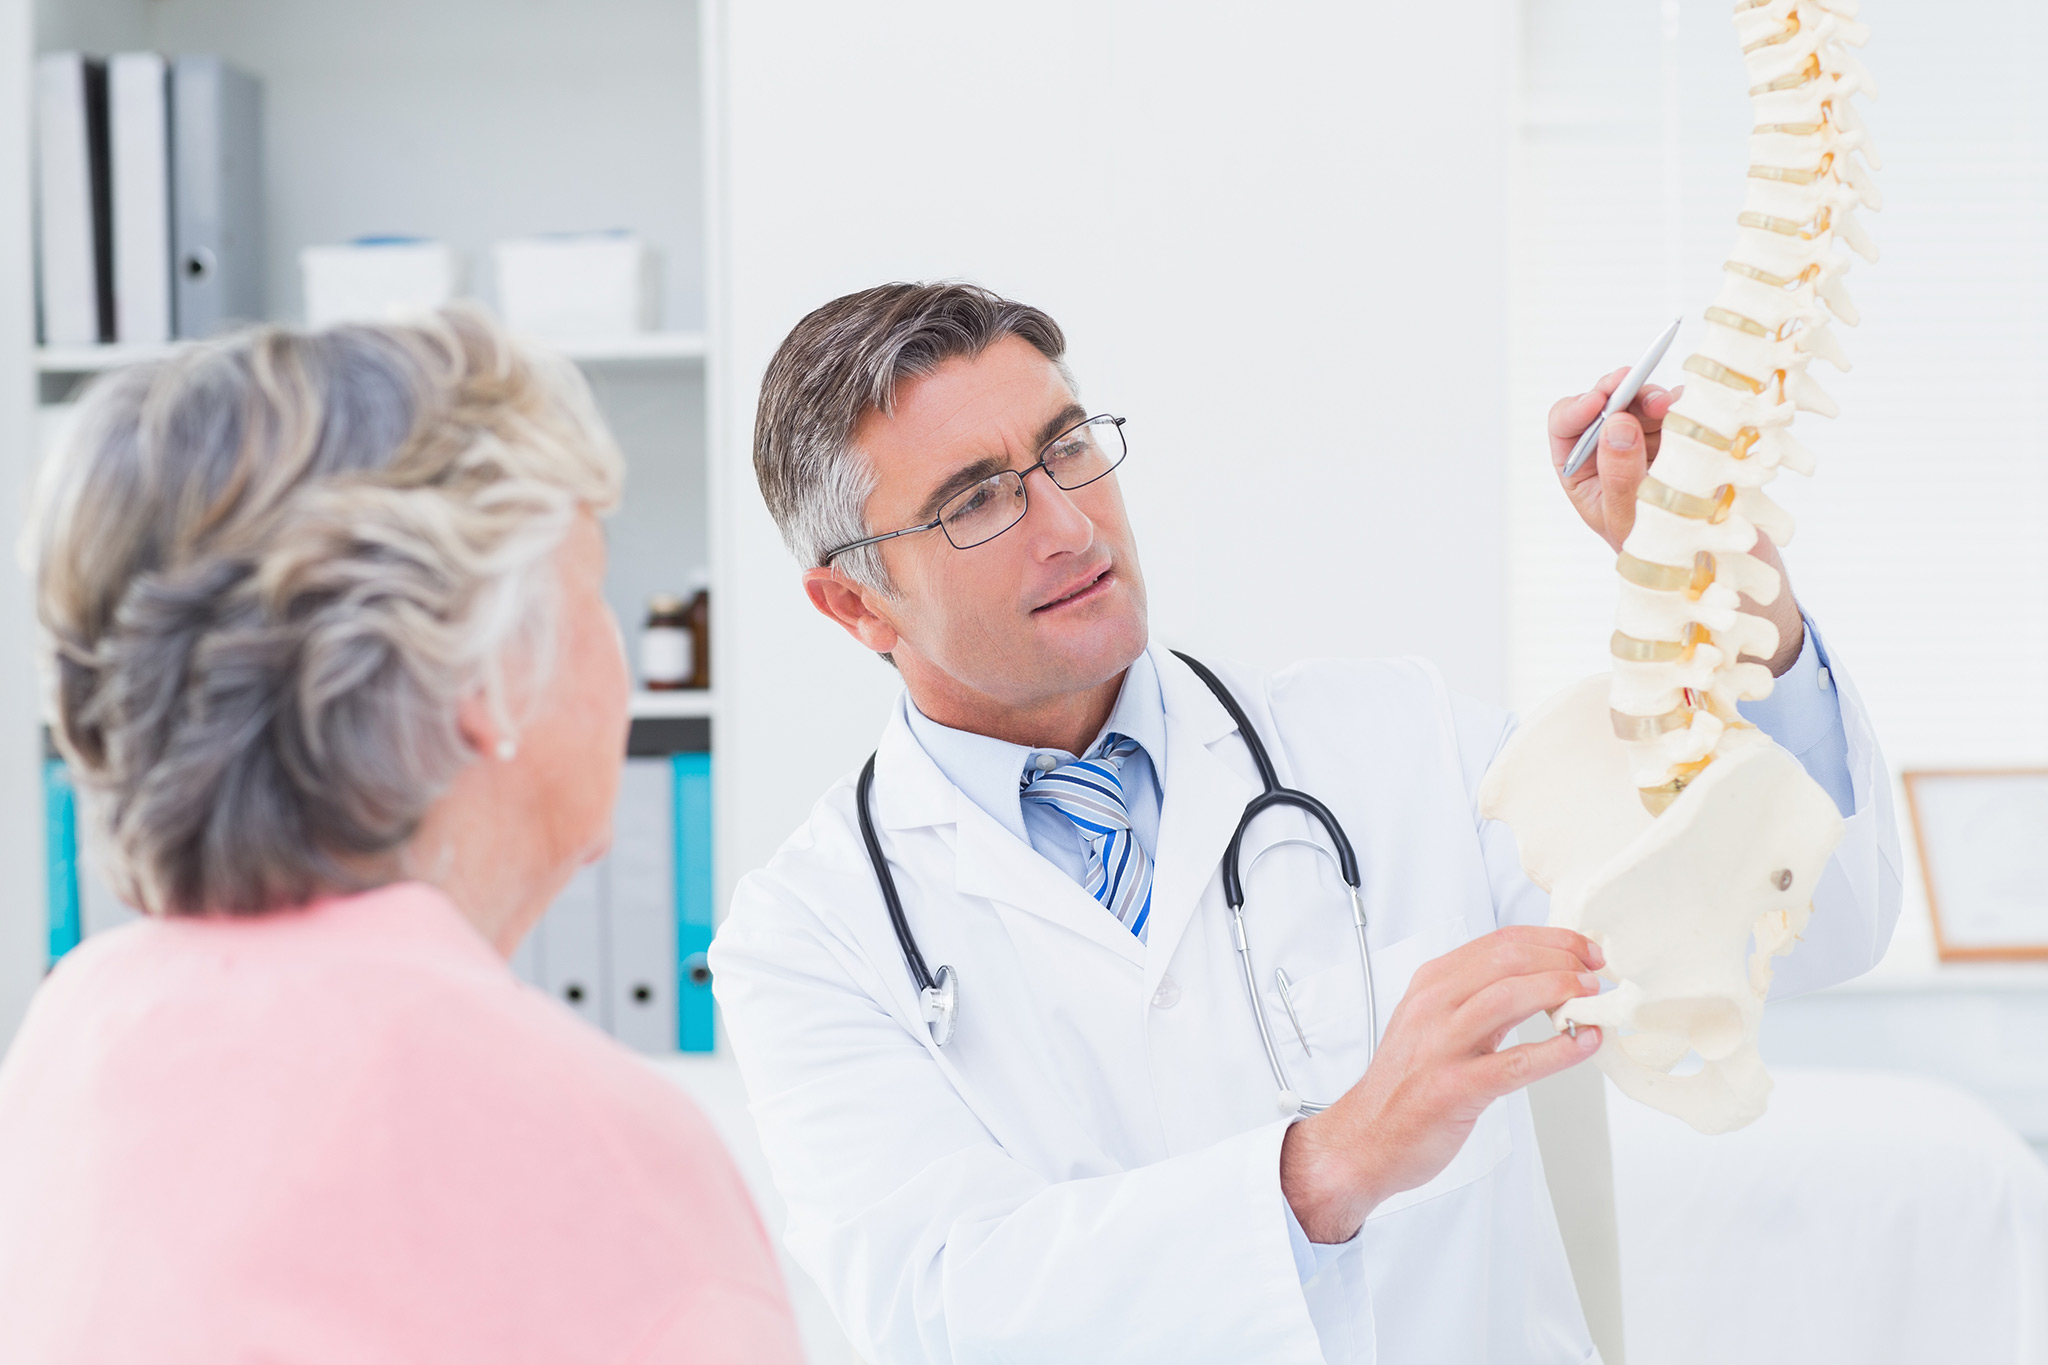 Doctor using a model of spine to explain condition to patient